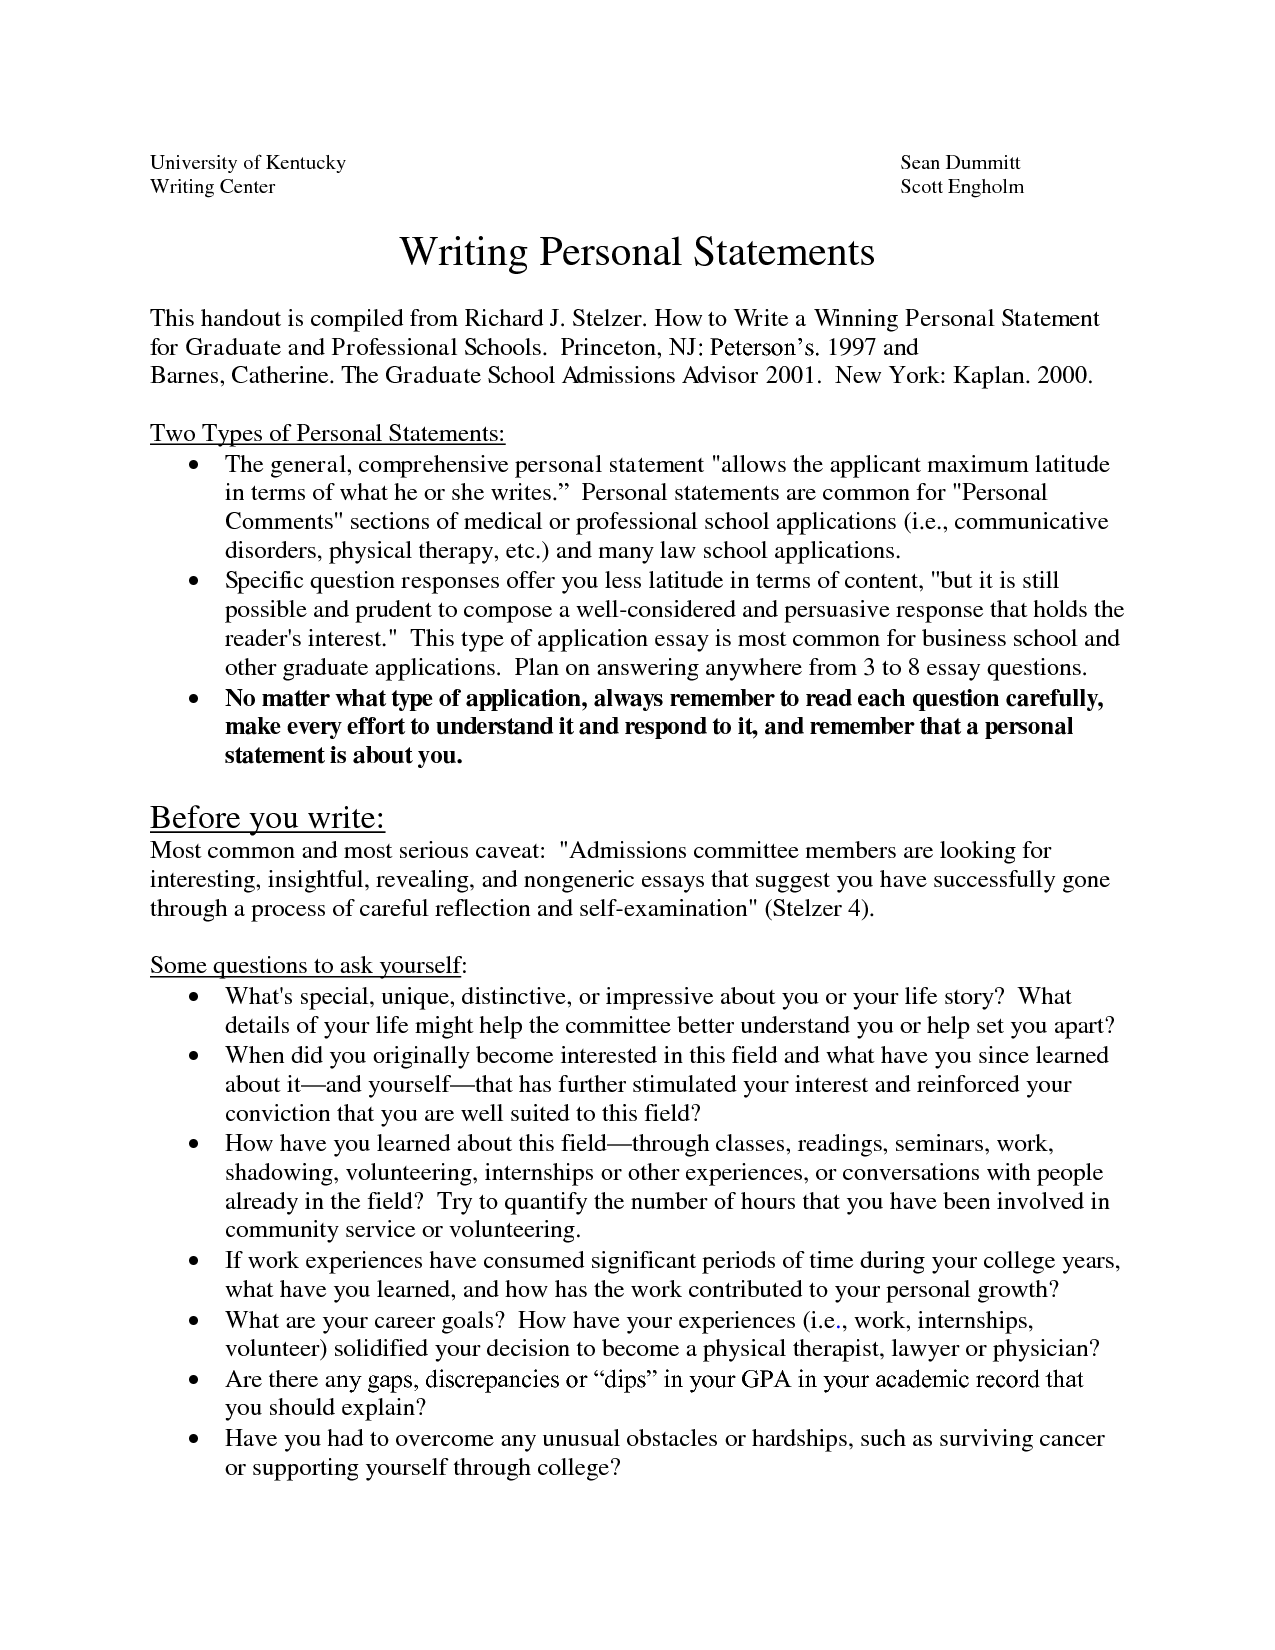 how to start a community service essay essay help el mejor l images about graduate school essay on value of community service